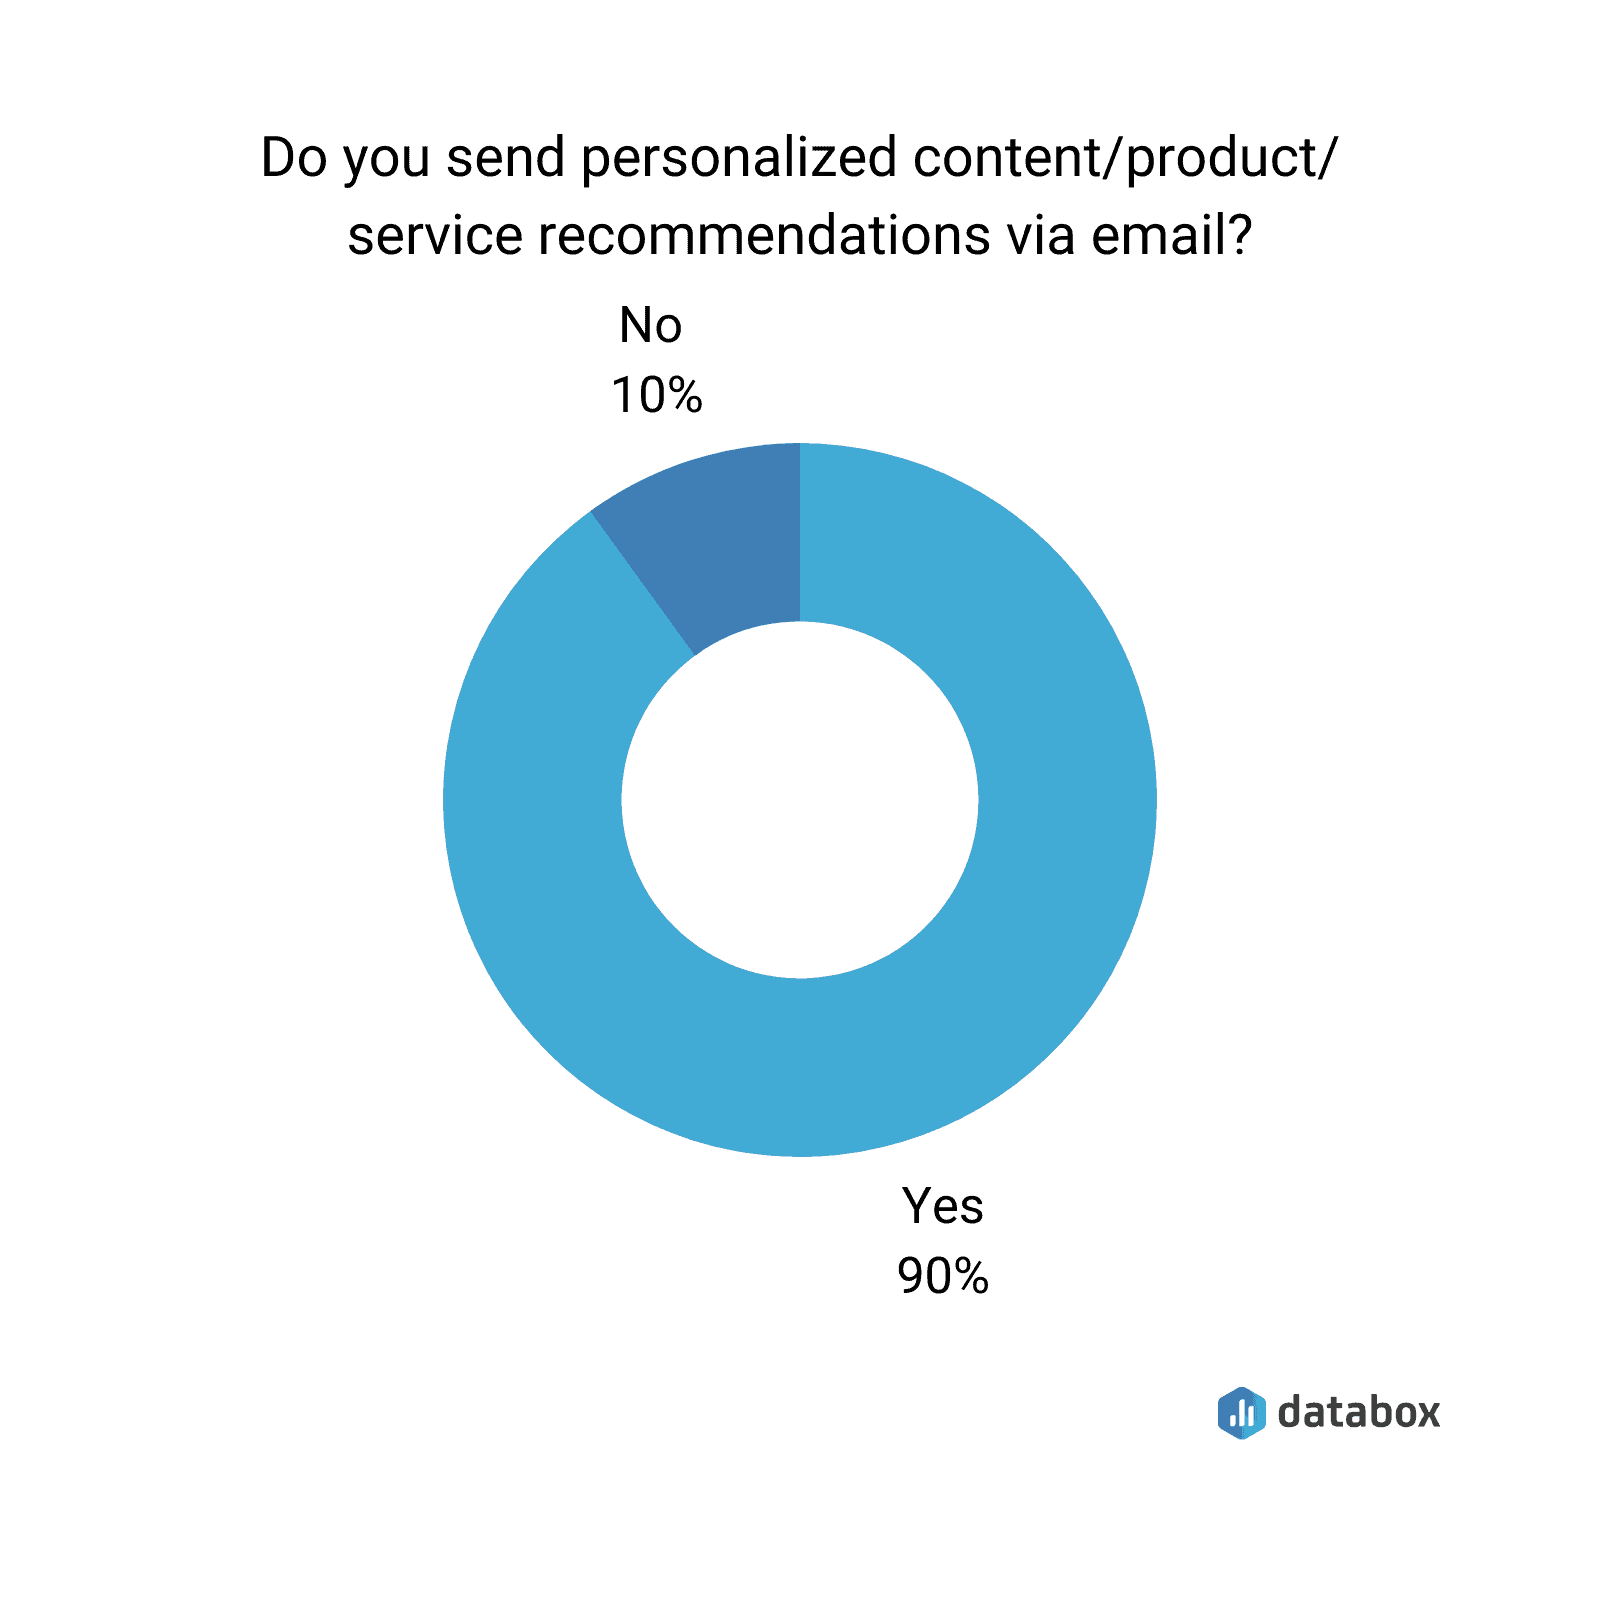 Donut chart showing the number of survey respondents sending personalized content or product service via email